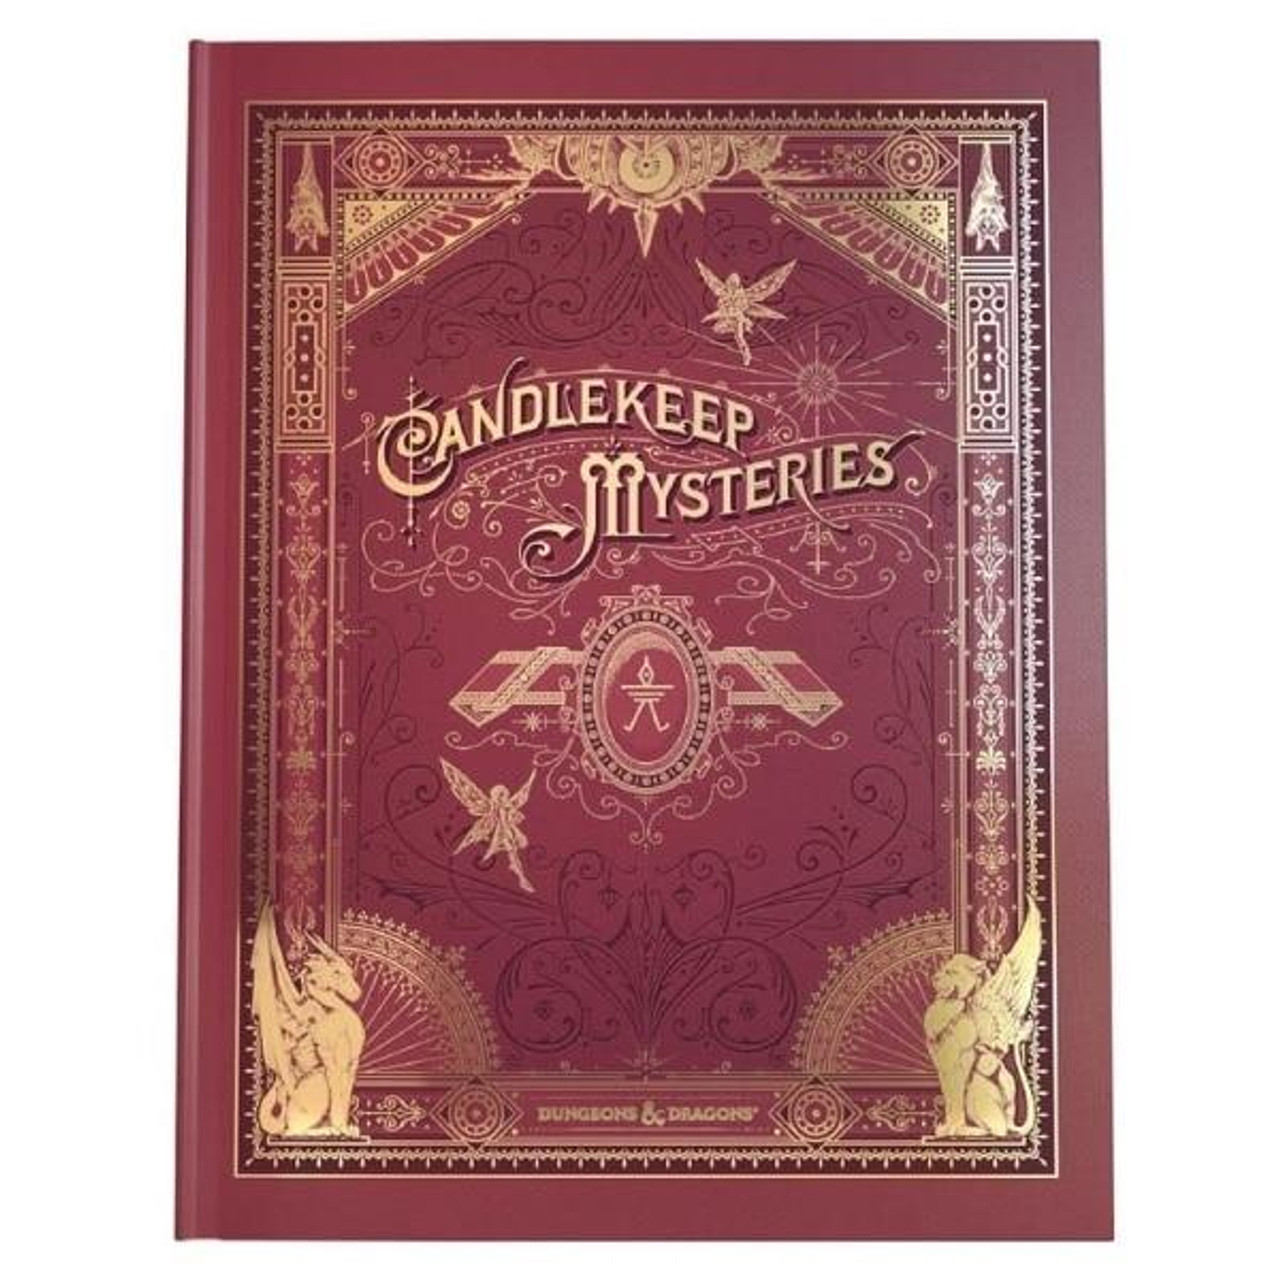 Wizards of the Coast DandD Manual - 27 Candlekeep Mysteries Alternate Cover